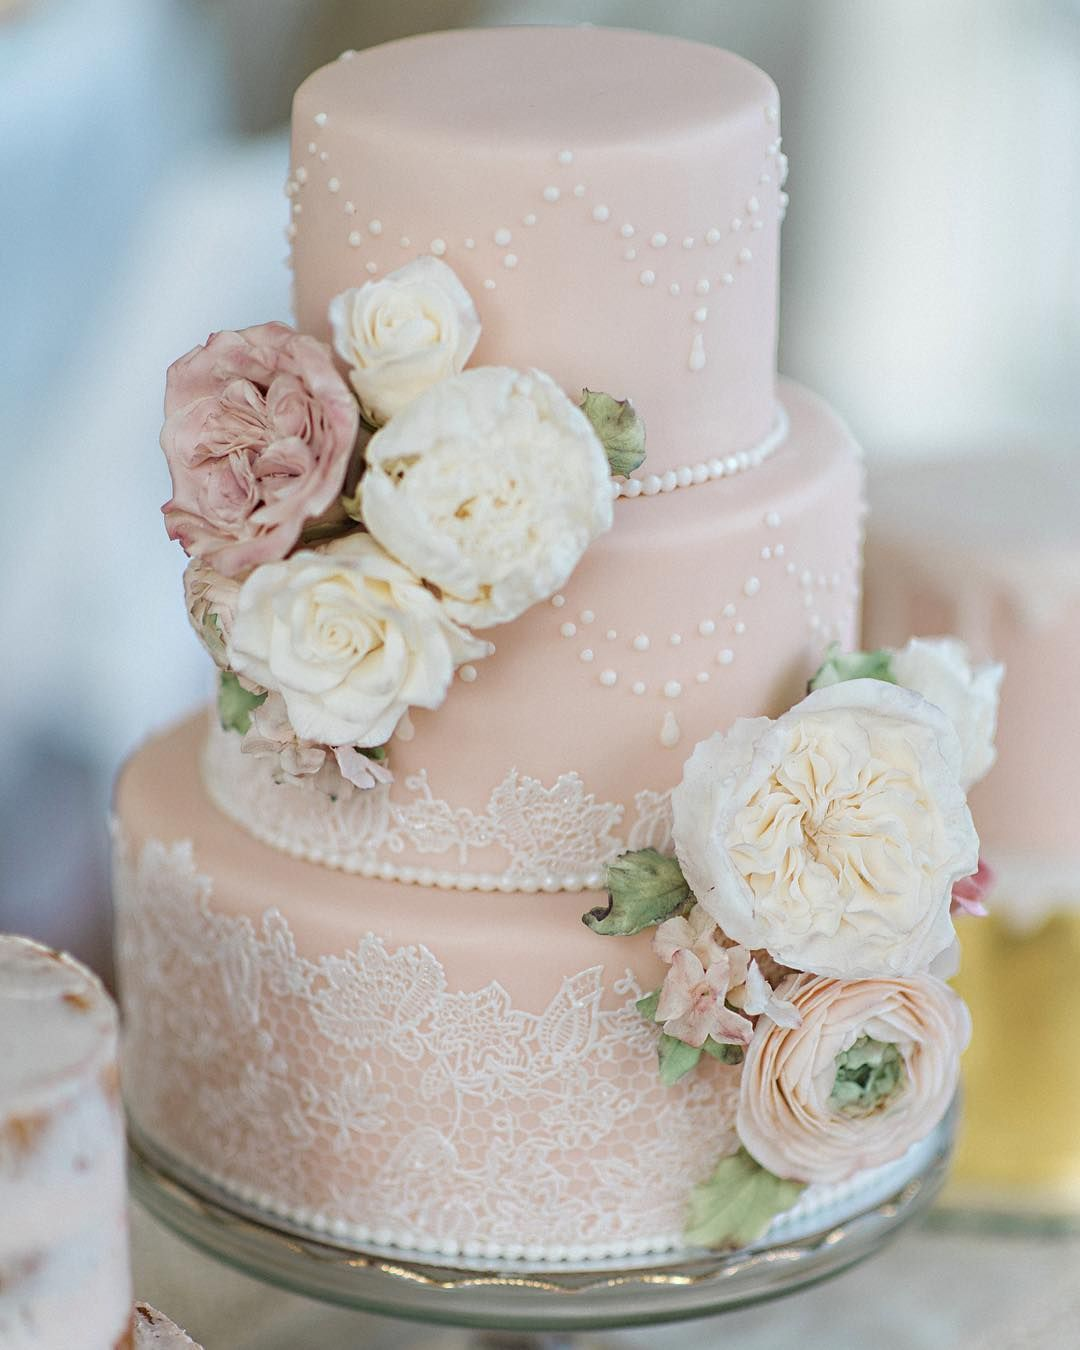 Blush wedding cake weddingcake cakephoto wedding